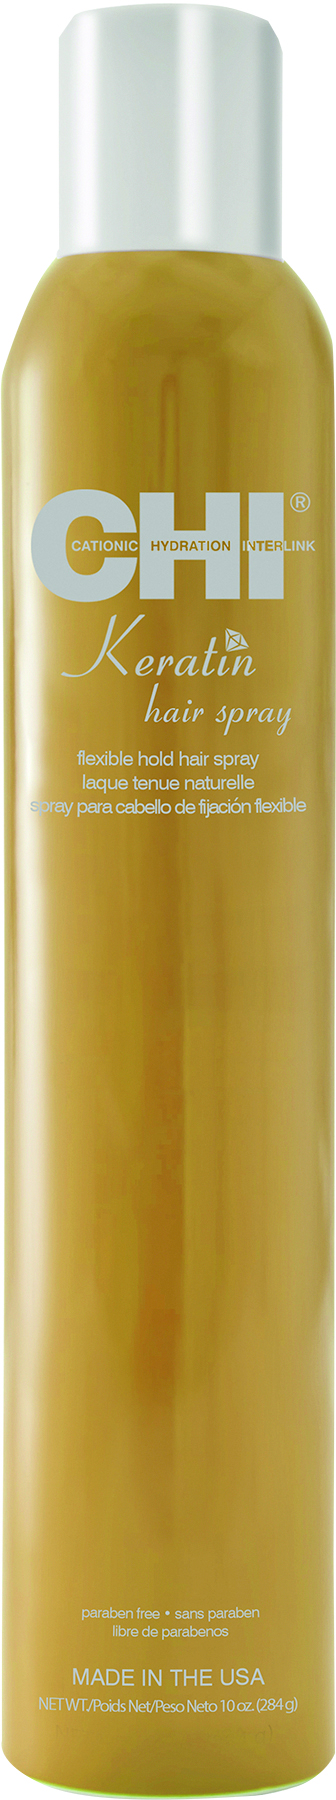 Farouk Systems is offering spring savings on shine products like Shine Infusion, Silk Therapy Shine On and Rapid Shine. In addition, finishers like Infra Texture, Silk Therapy Firm & Natural Hold Sprays, CHI Enviro hairsprays, Keratin Flex Spray and more.